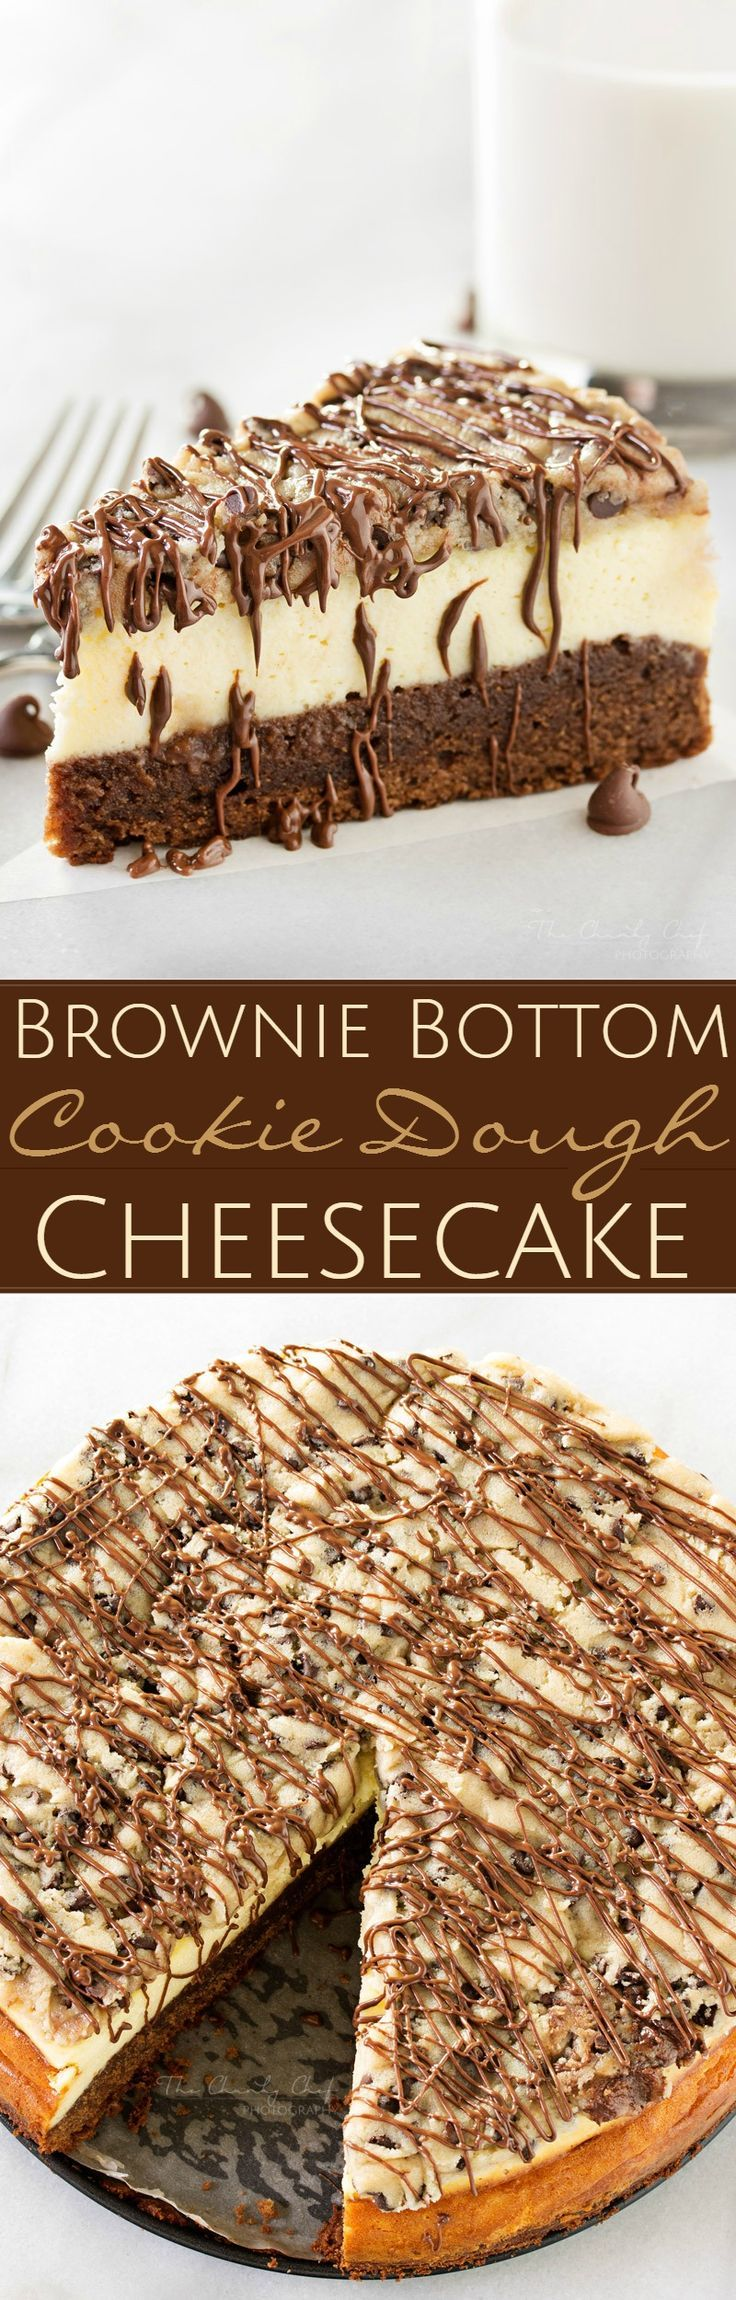 Brownie-Bottom-Cookie-Dough-Cheesecake | This impressive, yet super easy…